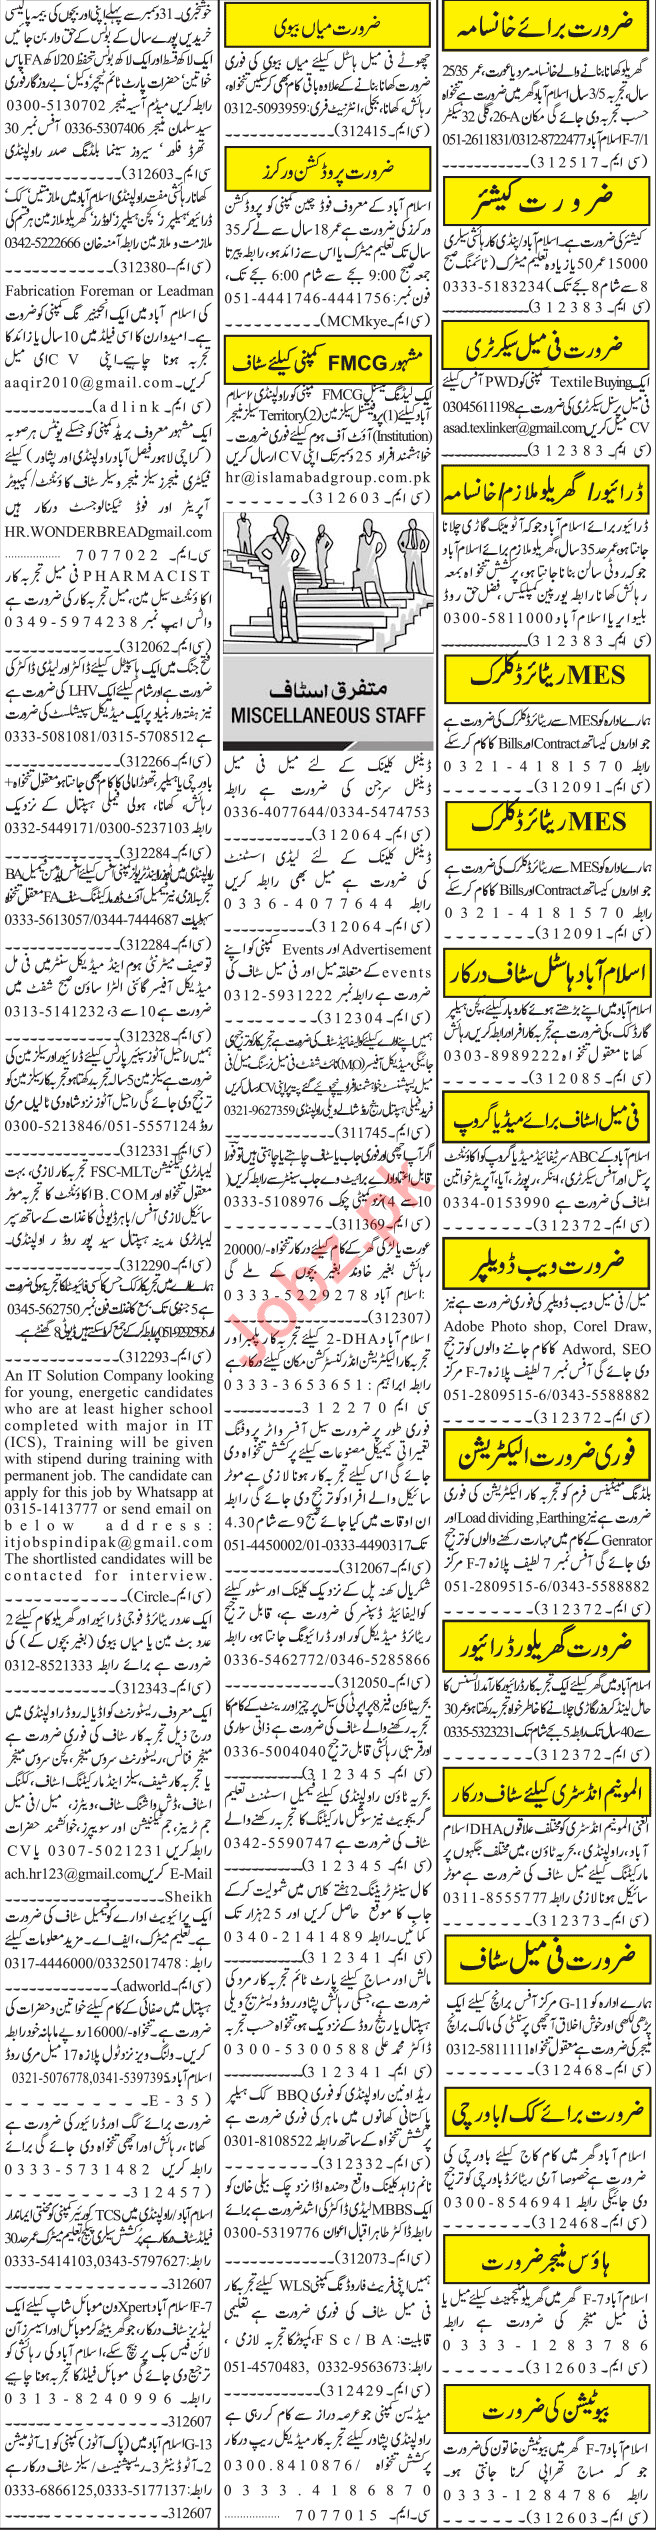 Jang Sunday Classified Ads 22 Dec 2019 for Management